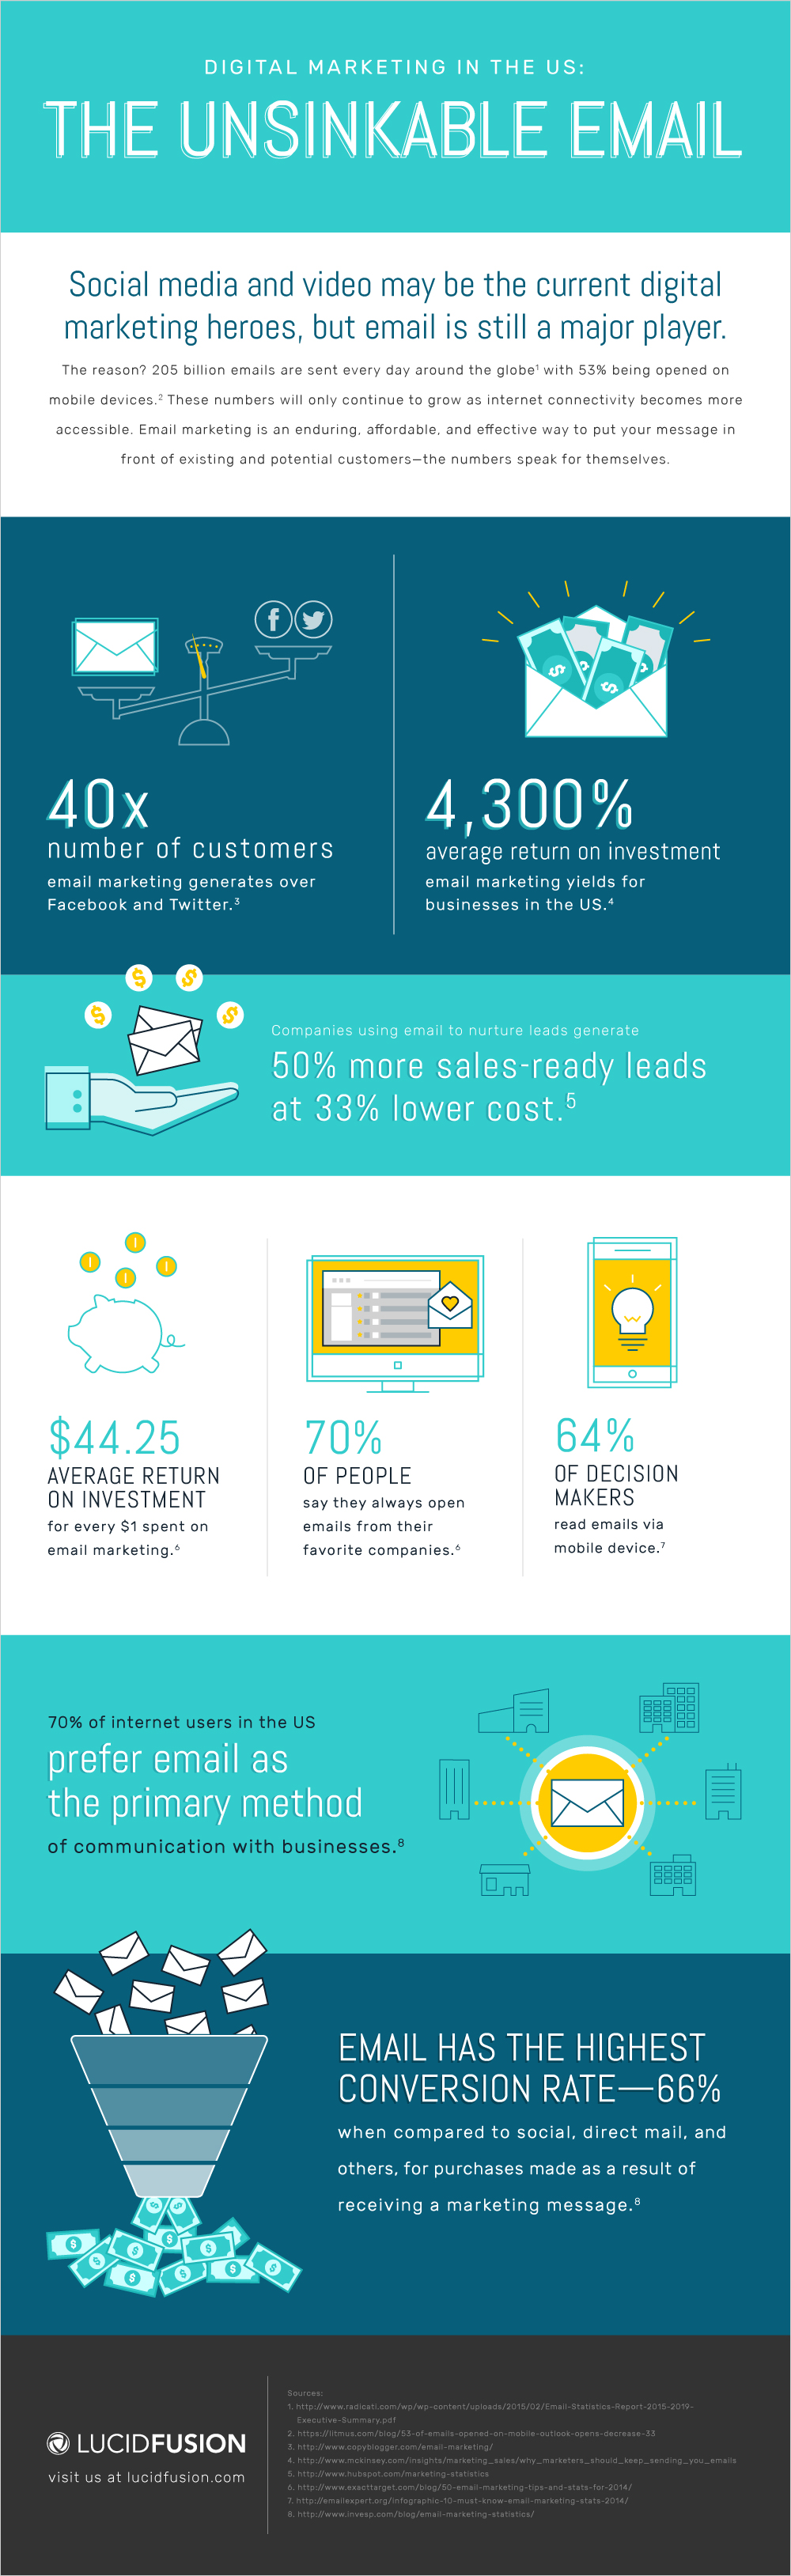 LucidFusion_Digital Marketing Trends_Email_Infographic